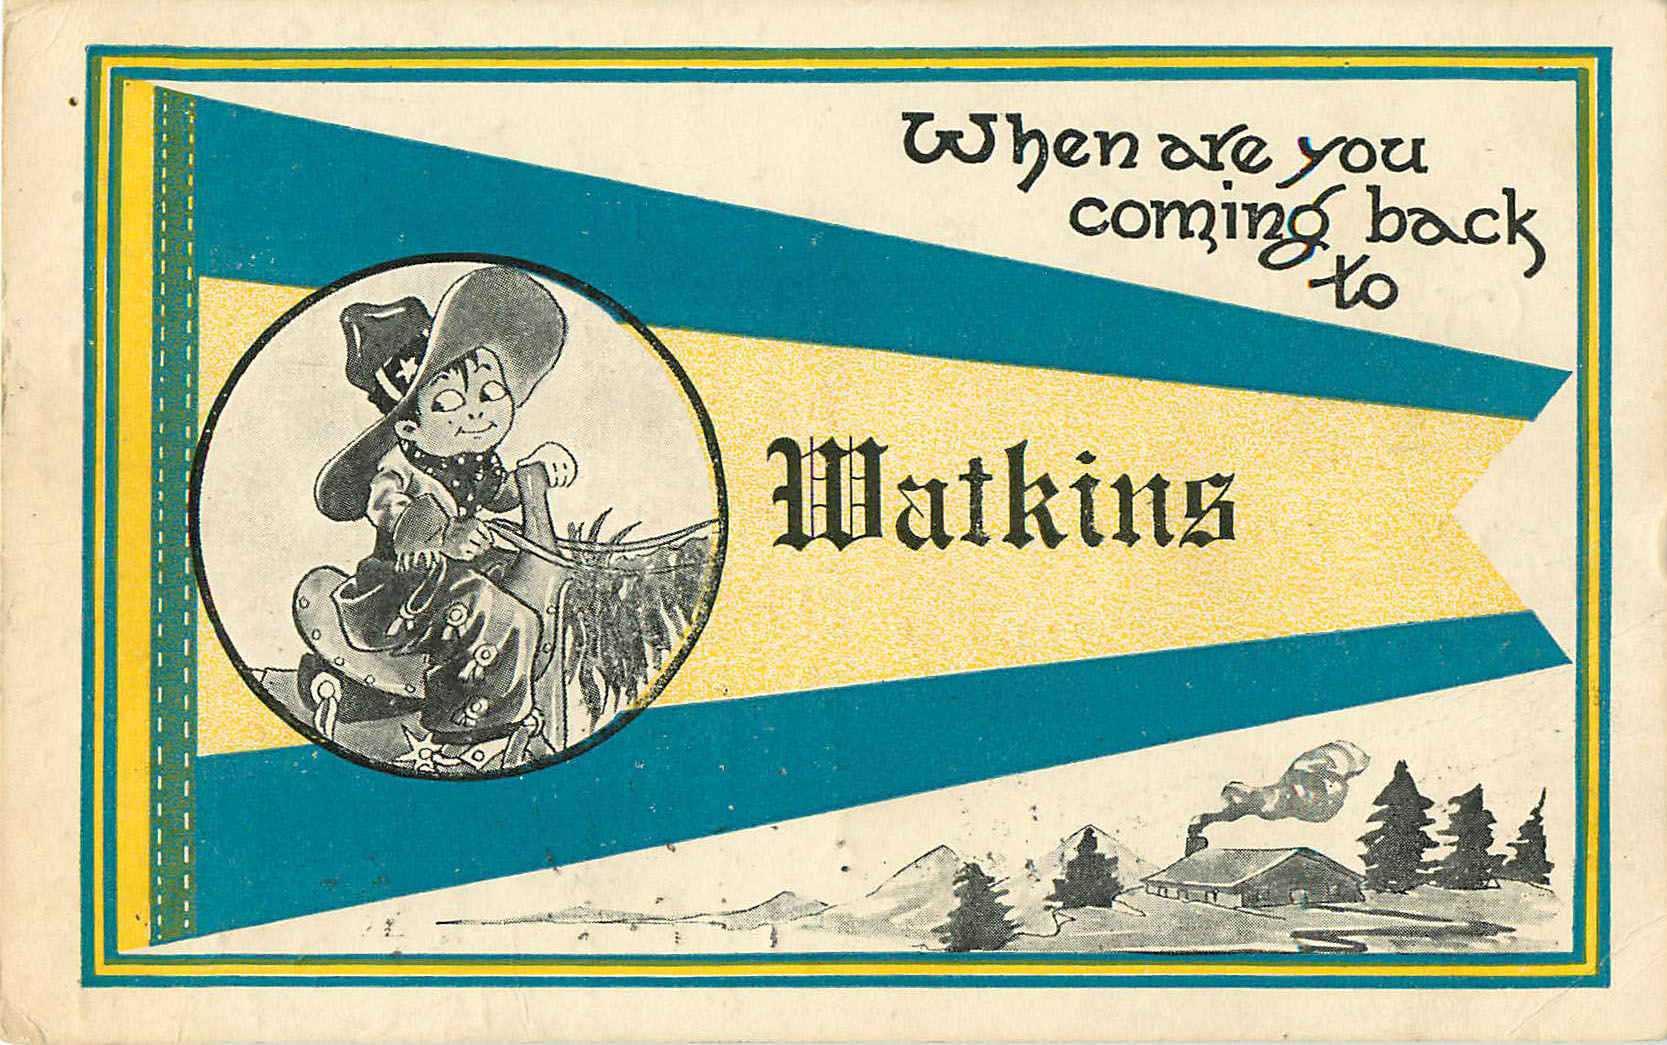 When are you Coming Back to Watkins - Pennant Postcard